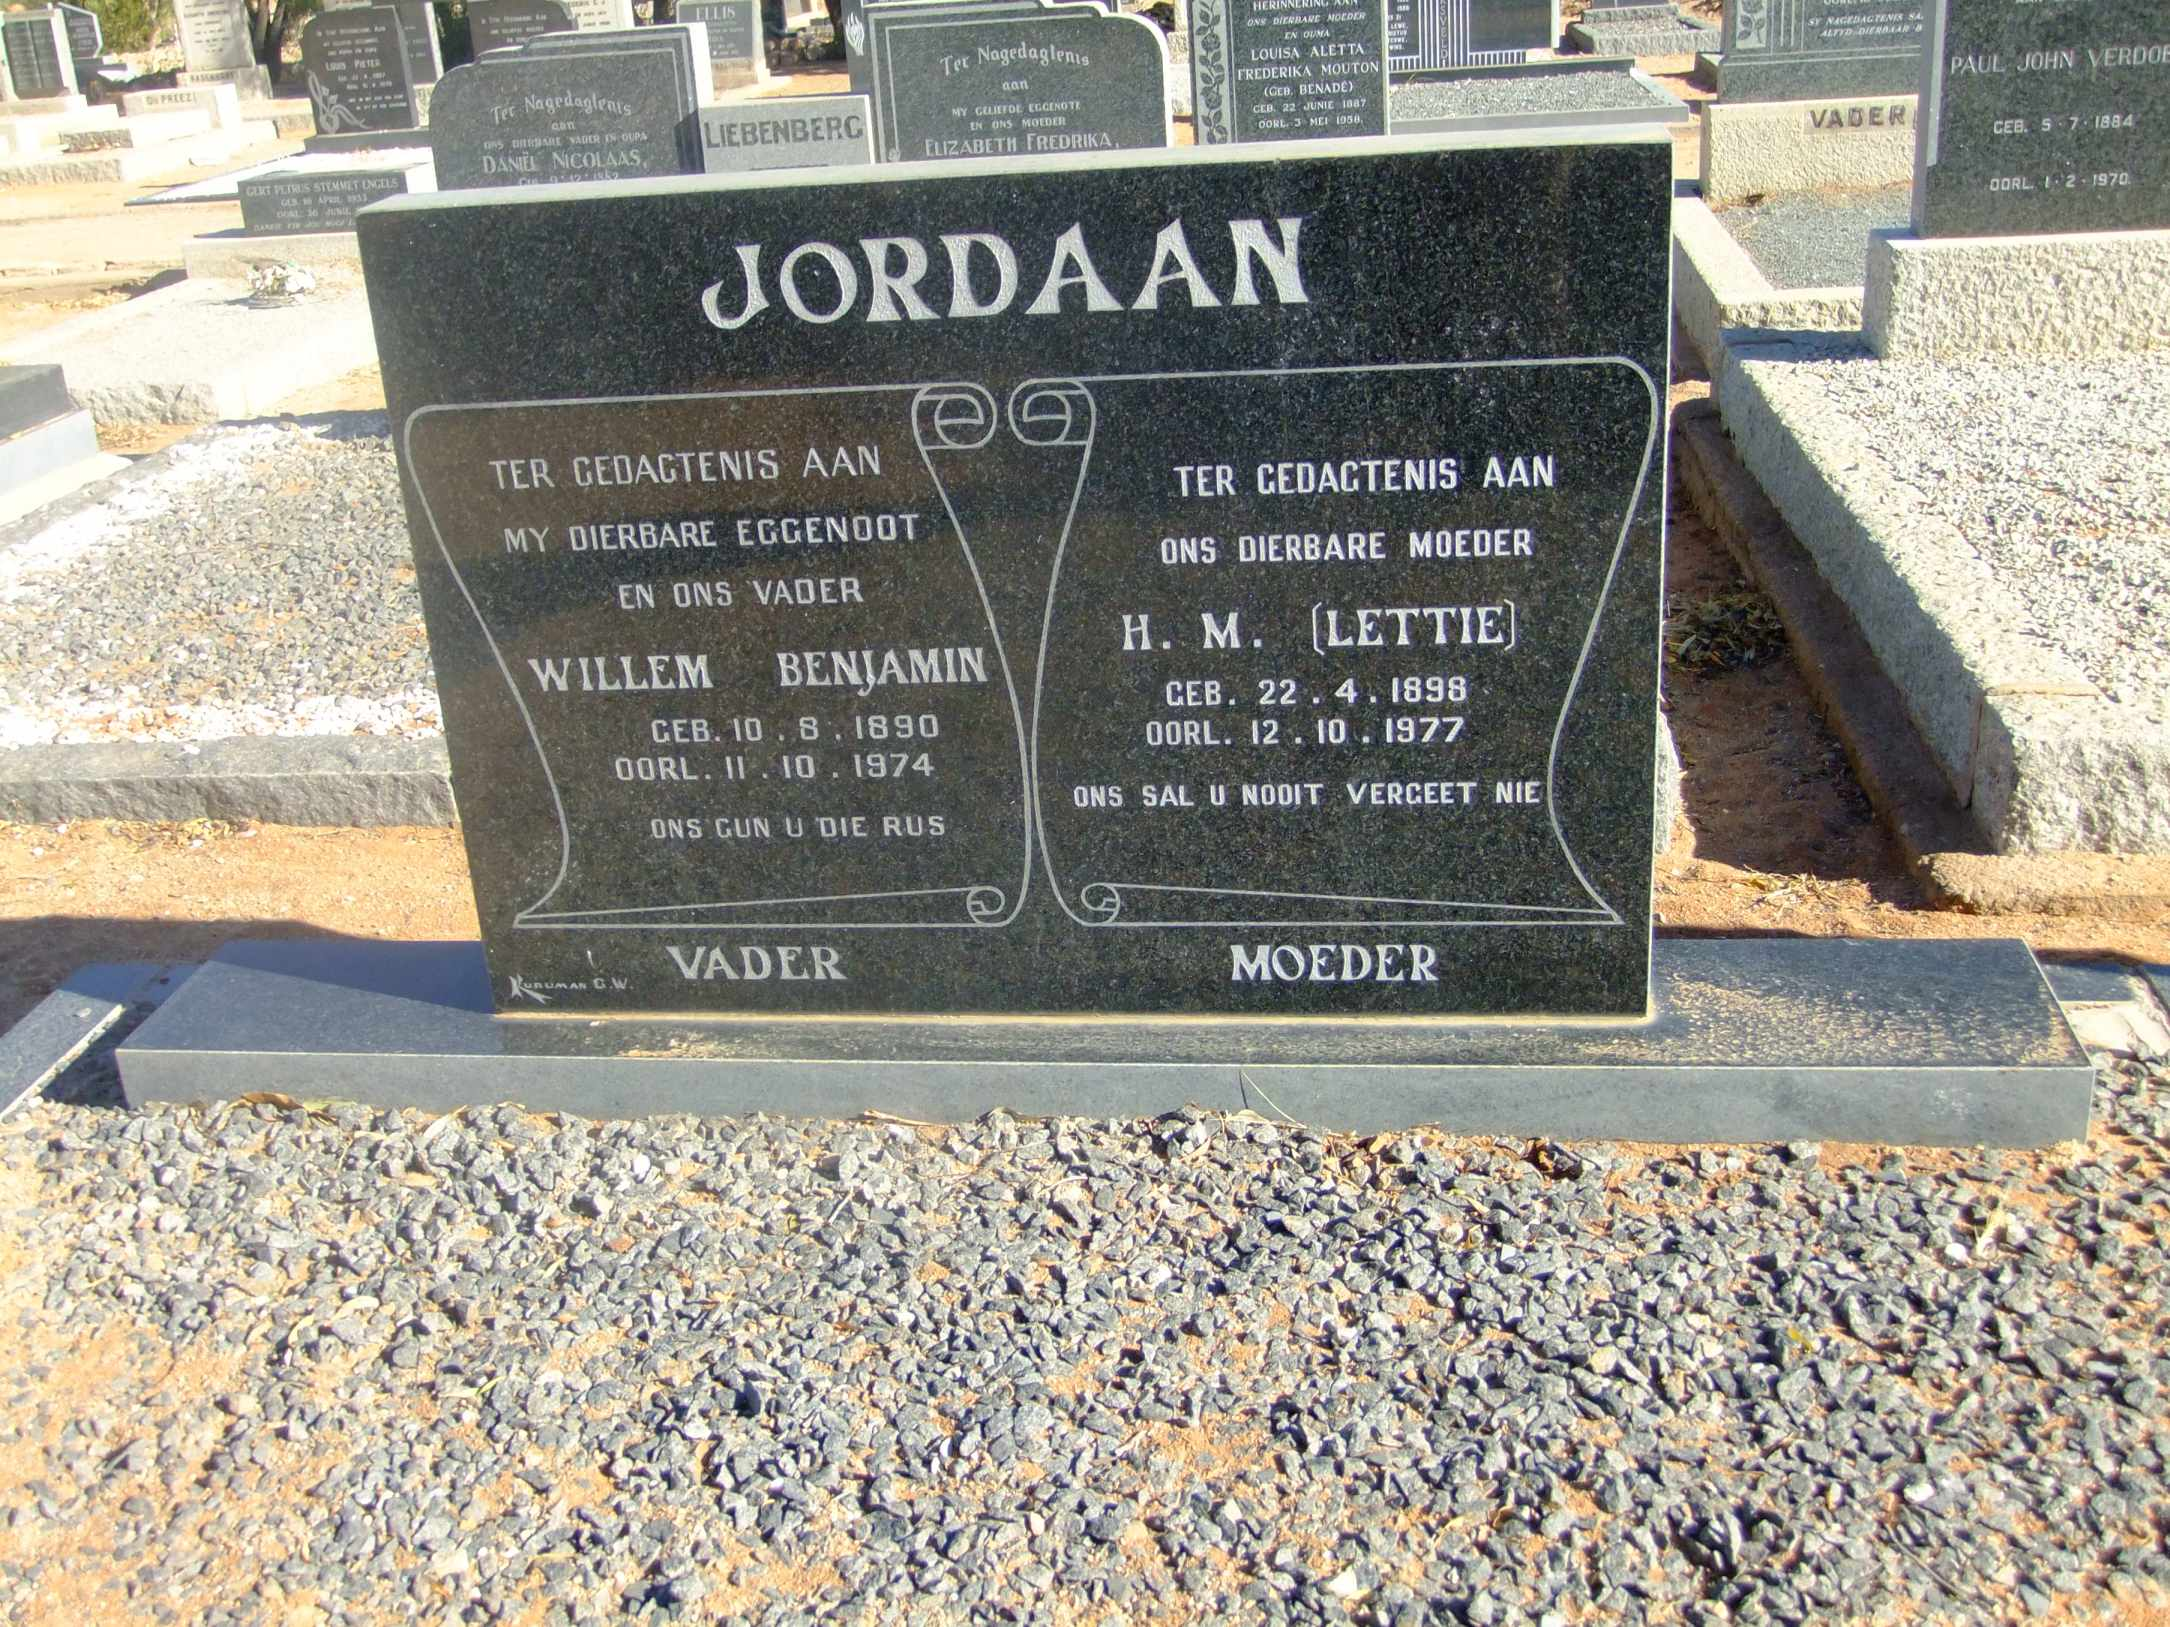 Jordaan, Willem Benjamin born 10 August 1890 died 11 October 1974 and Lettie born 22 April 1898 died 12 October 1977